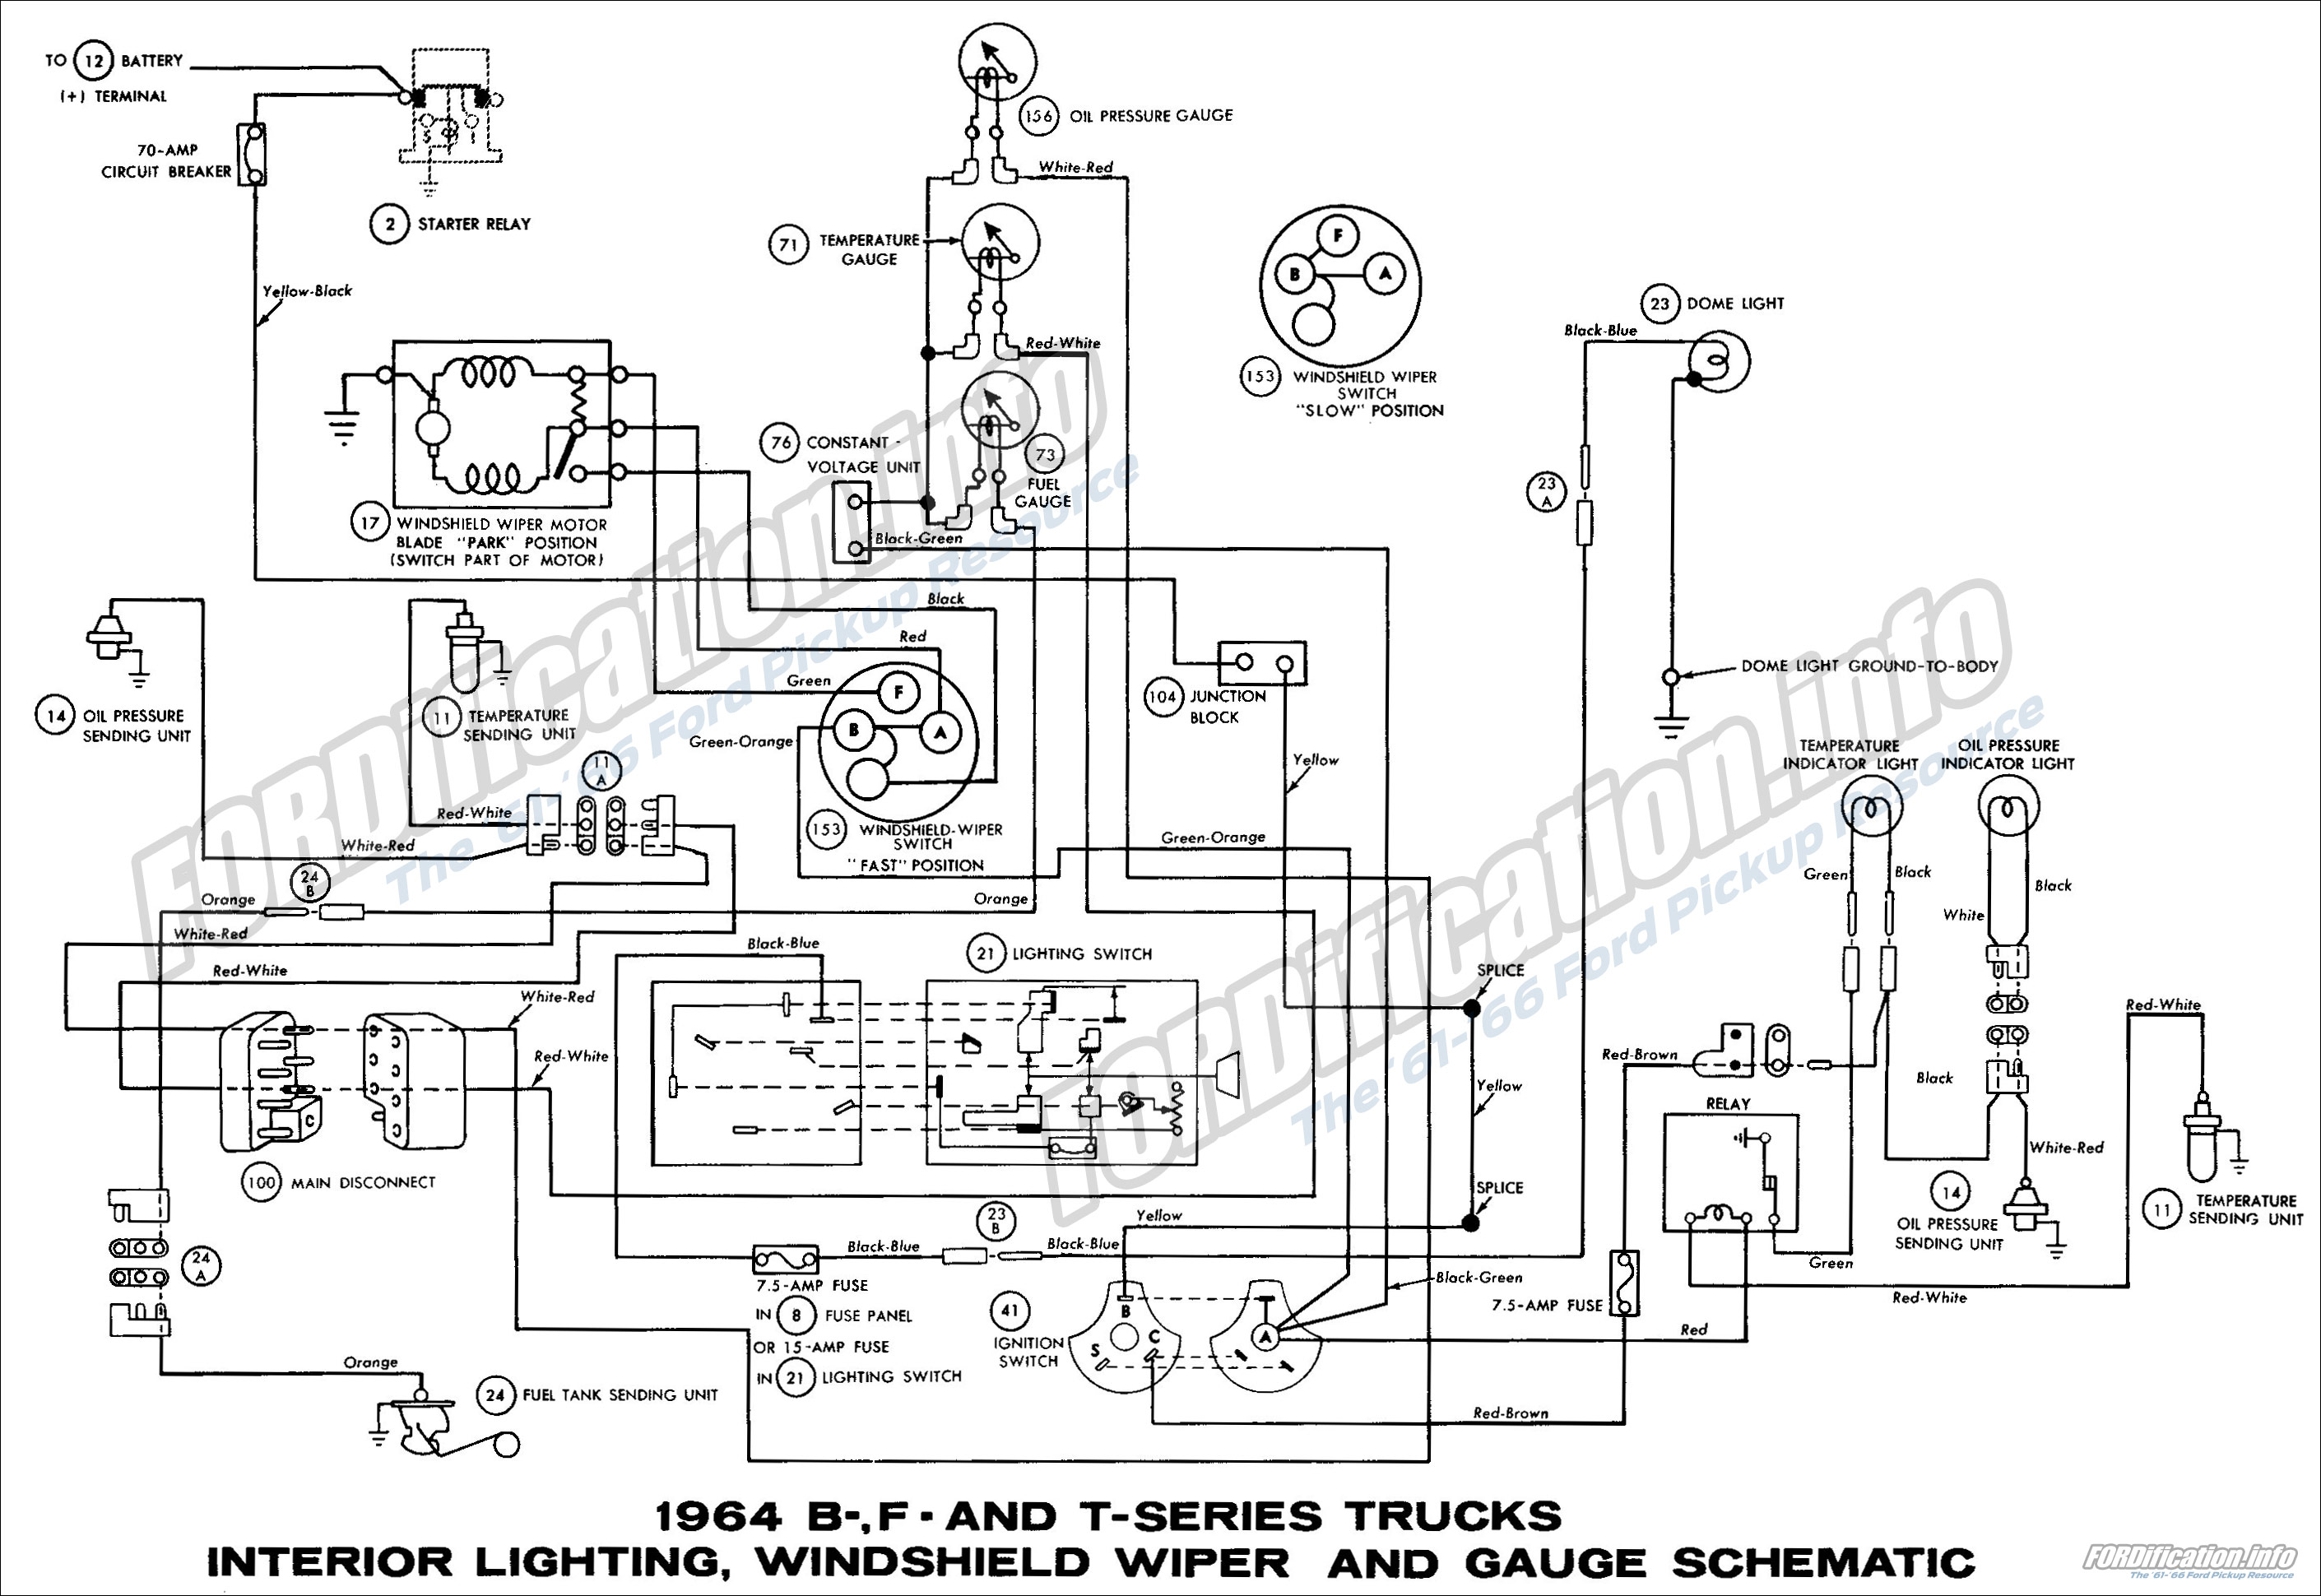 12 volt ford ignition wiring diagram 1964 ford truck wiring diagrams - fordification.info - the ...